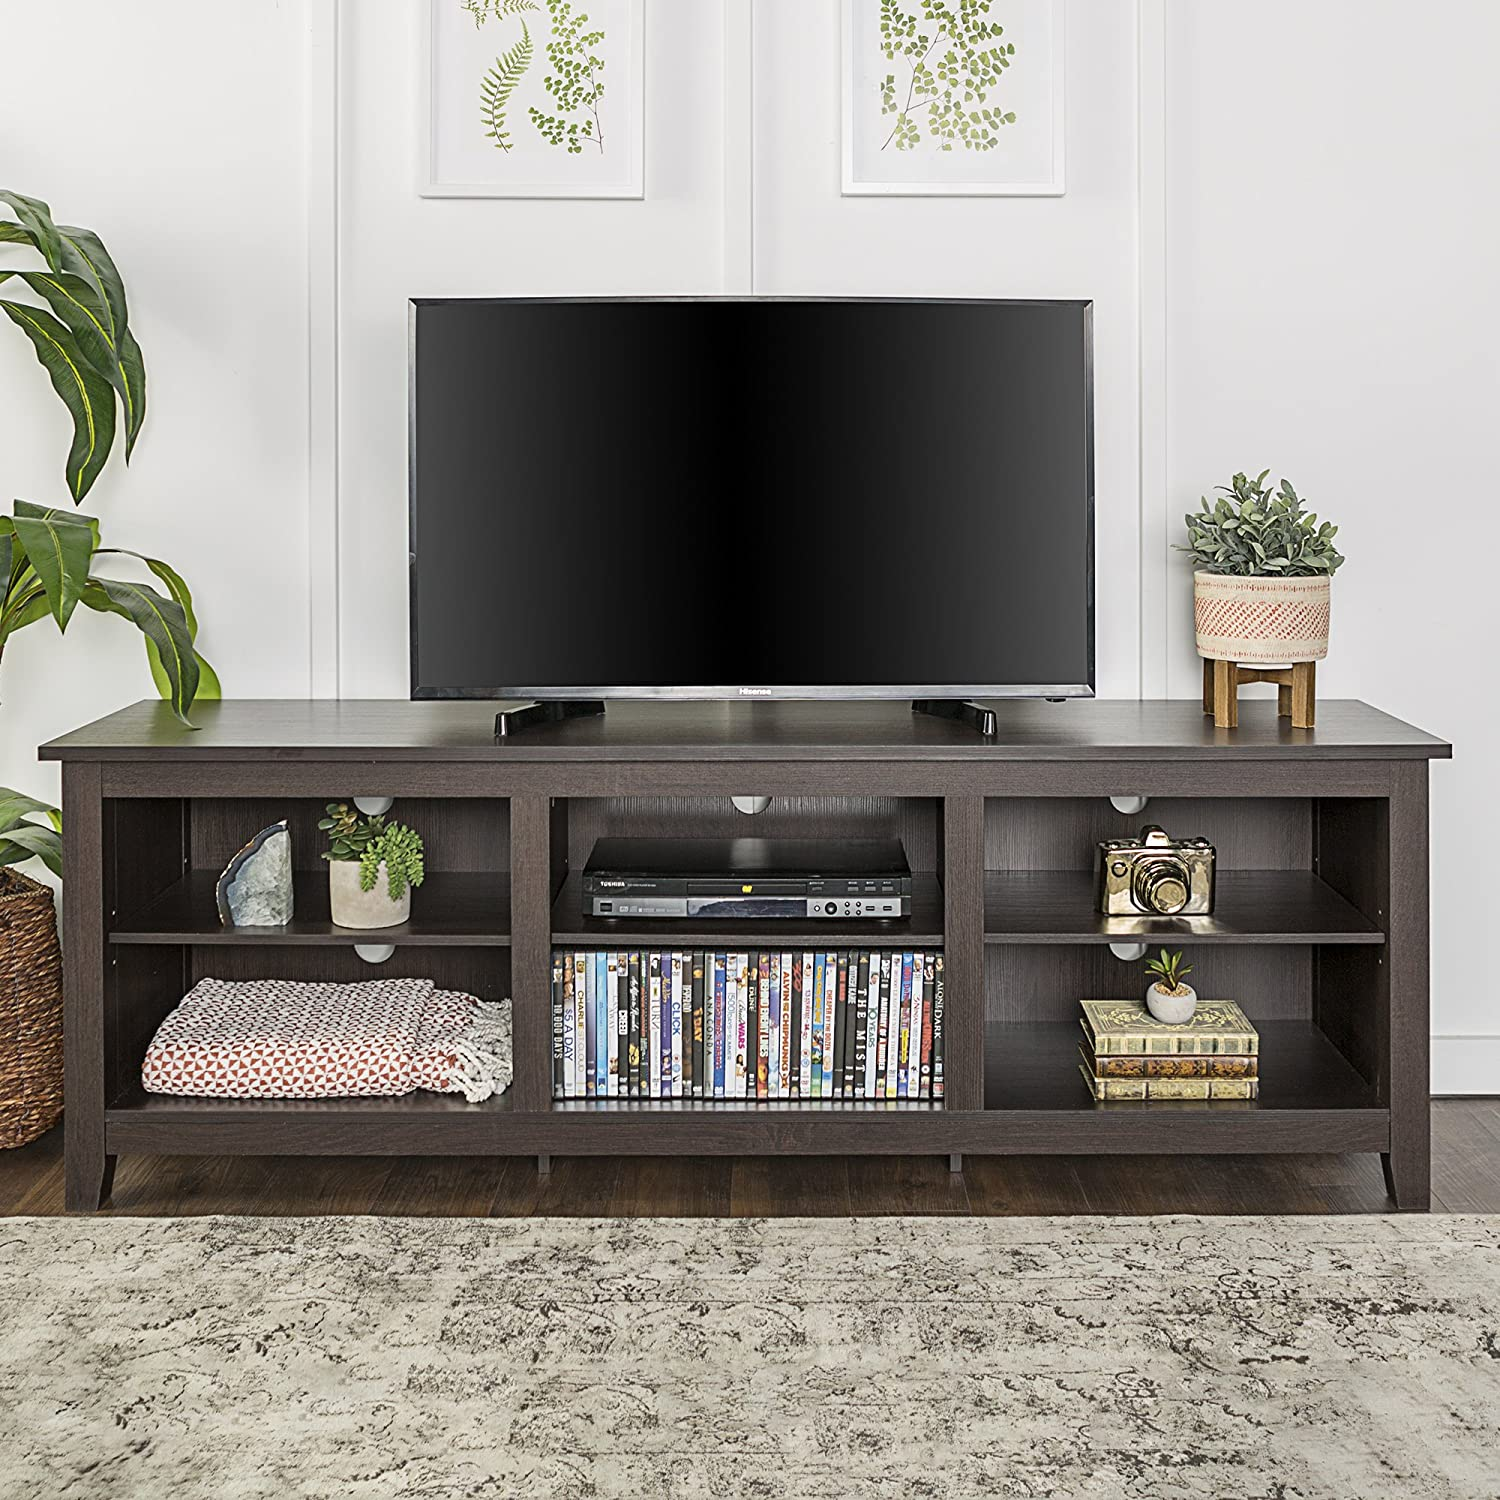 Amazon Com We Furniture 70 Espresso Wood Tv Stand Console For Flat